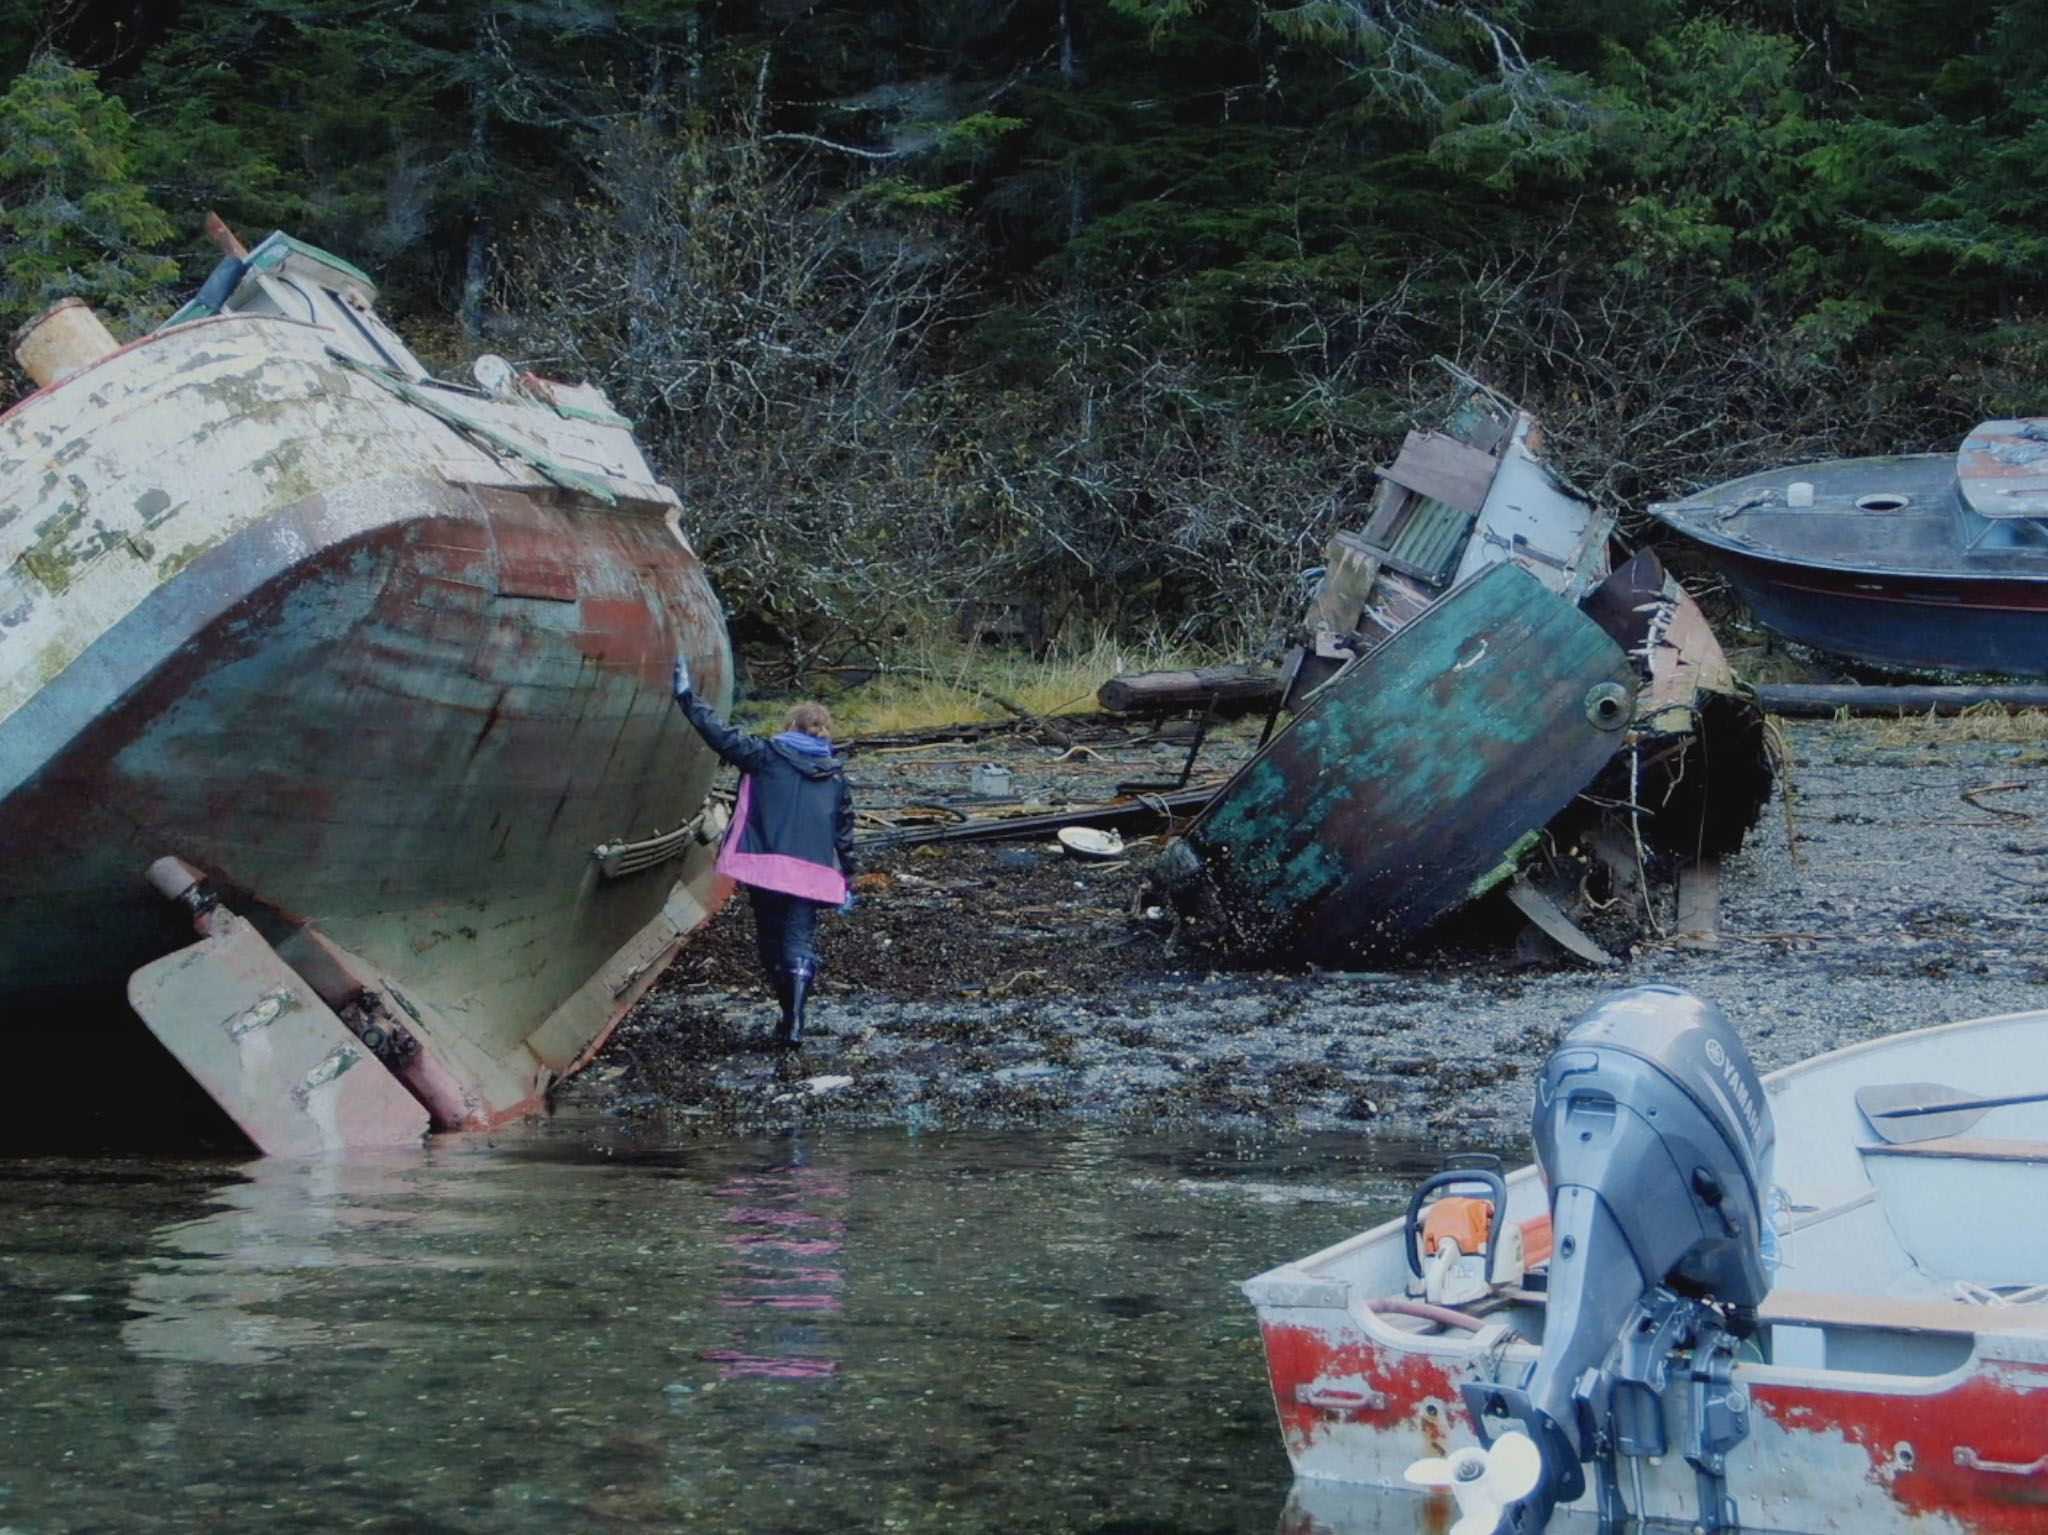 Mary Miller looks through the Boat Graveyard in search of parts to build an outhaul for her... [Photo of the day - May 2021]